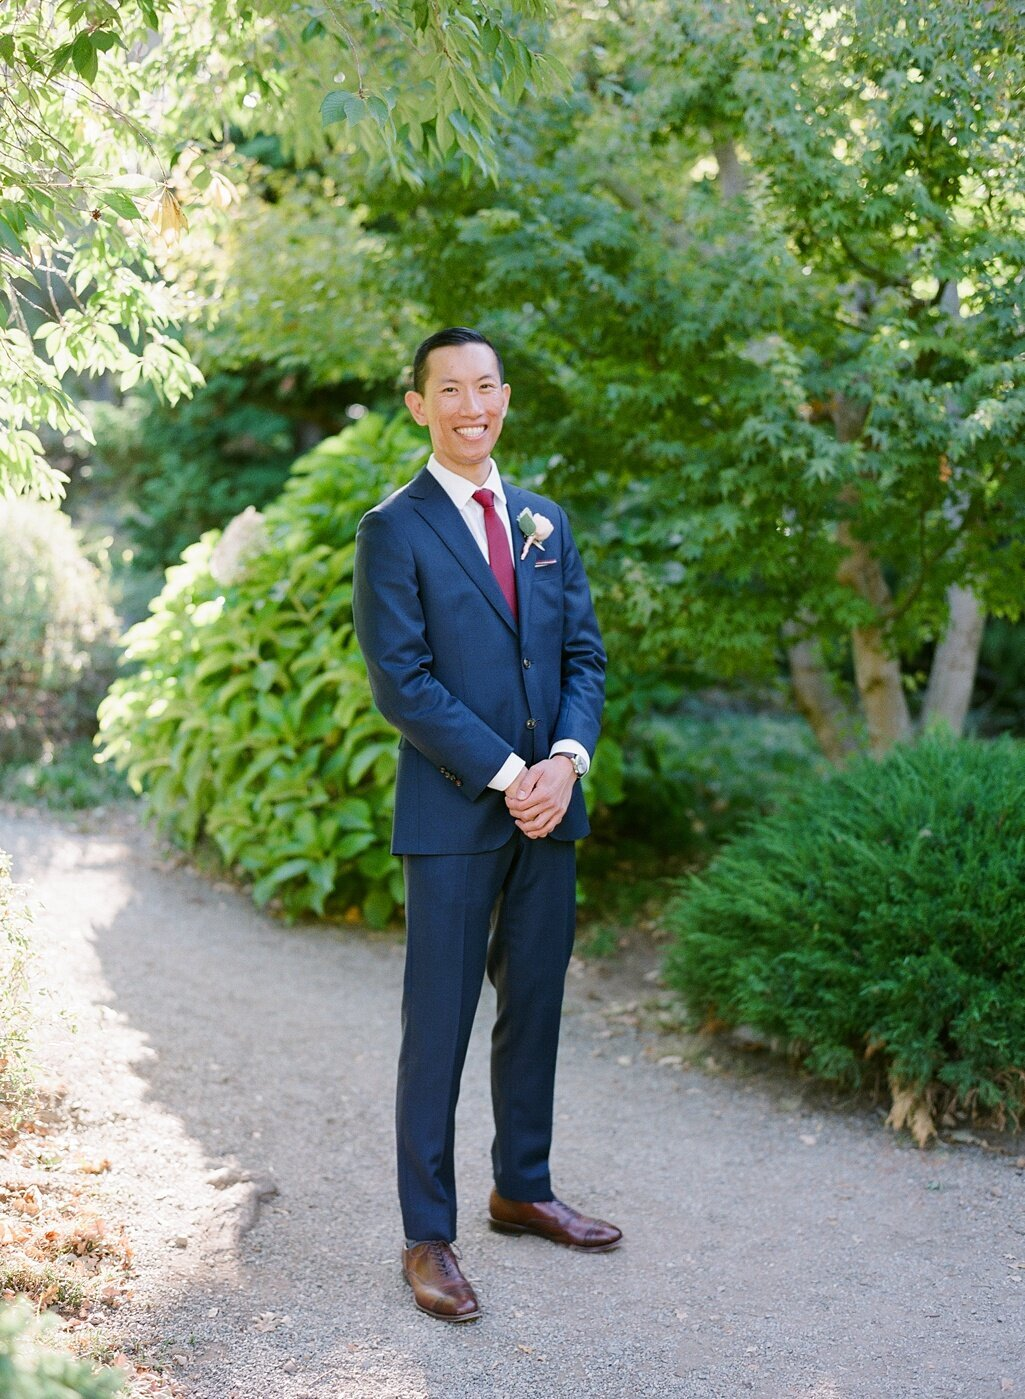 Jessie-Barksdale-Photography_Hakone-Gardens-Saratoga_San-Francisco-Bay-Area-Wedding-Photographer_0062